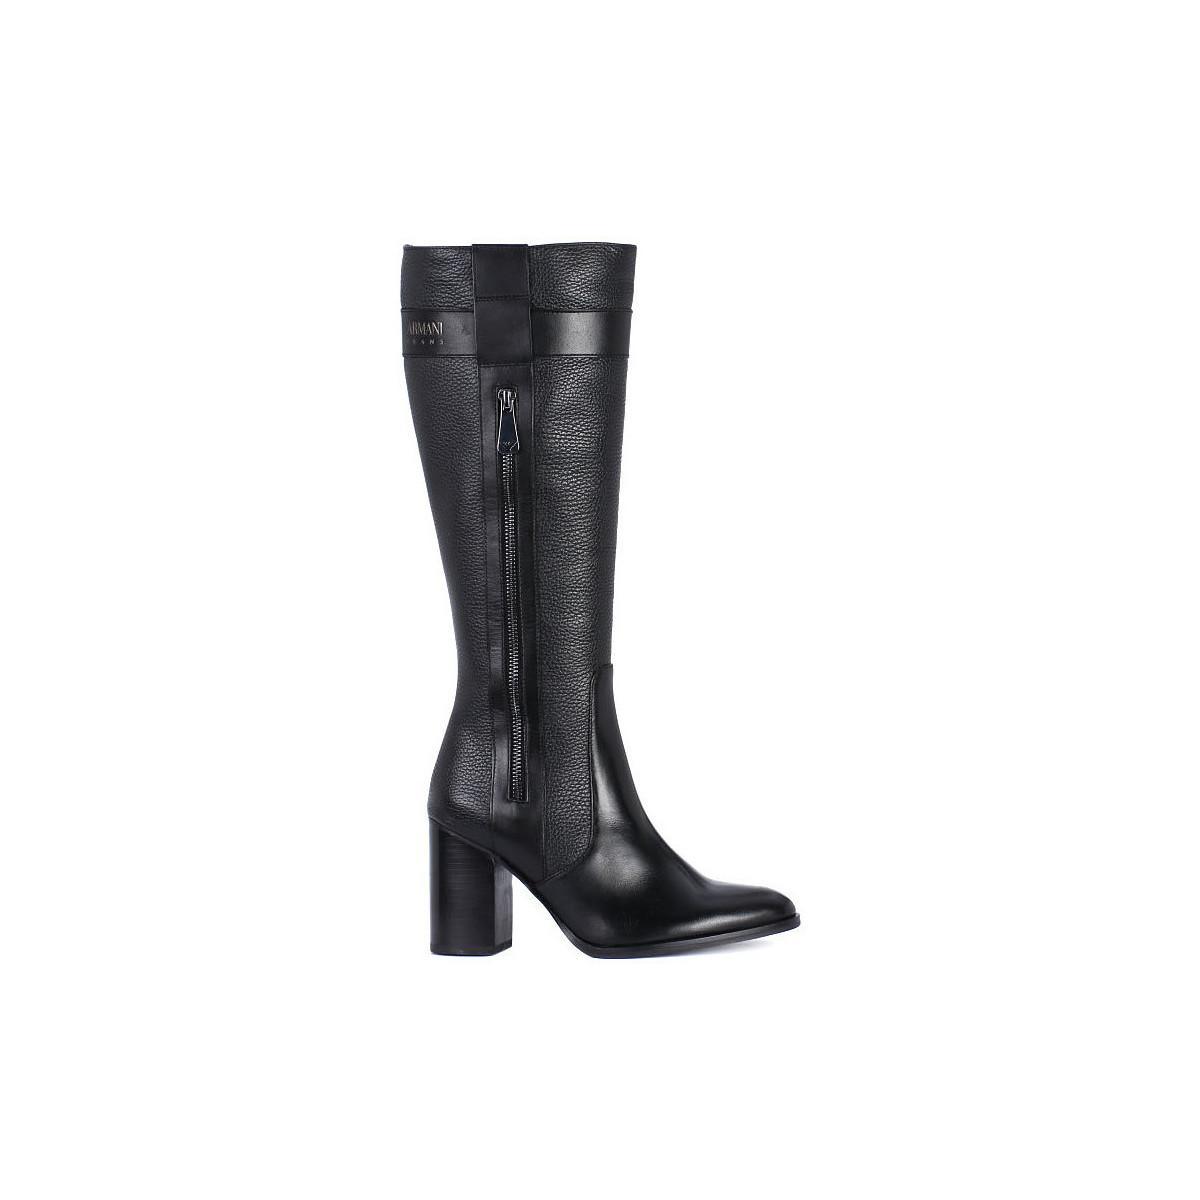 finest selection 8d33d c722a Armani Jeans Stivali Women's Boots In Black in Black - Lyst